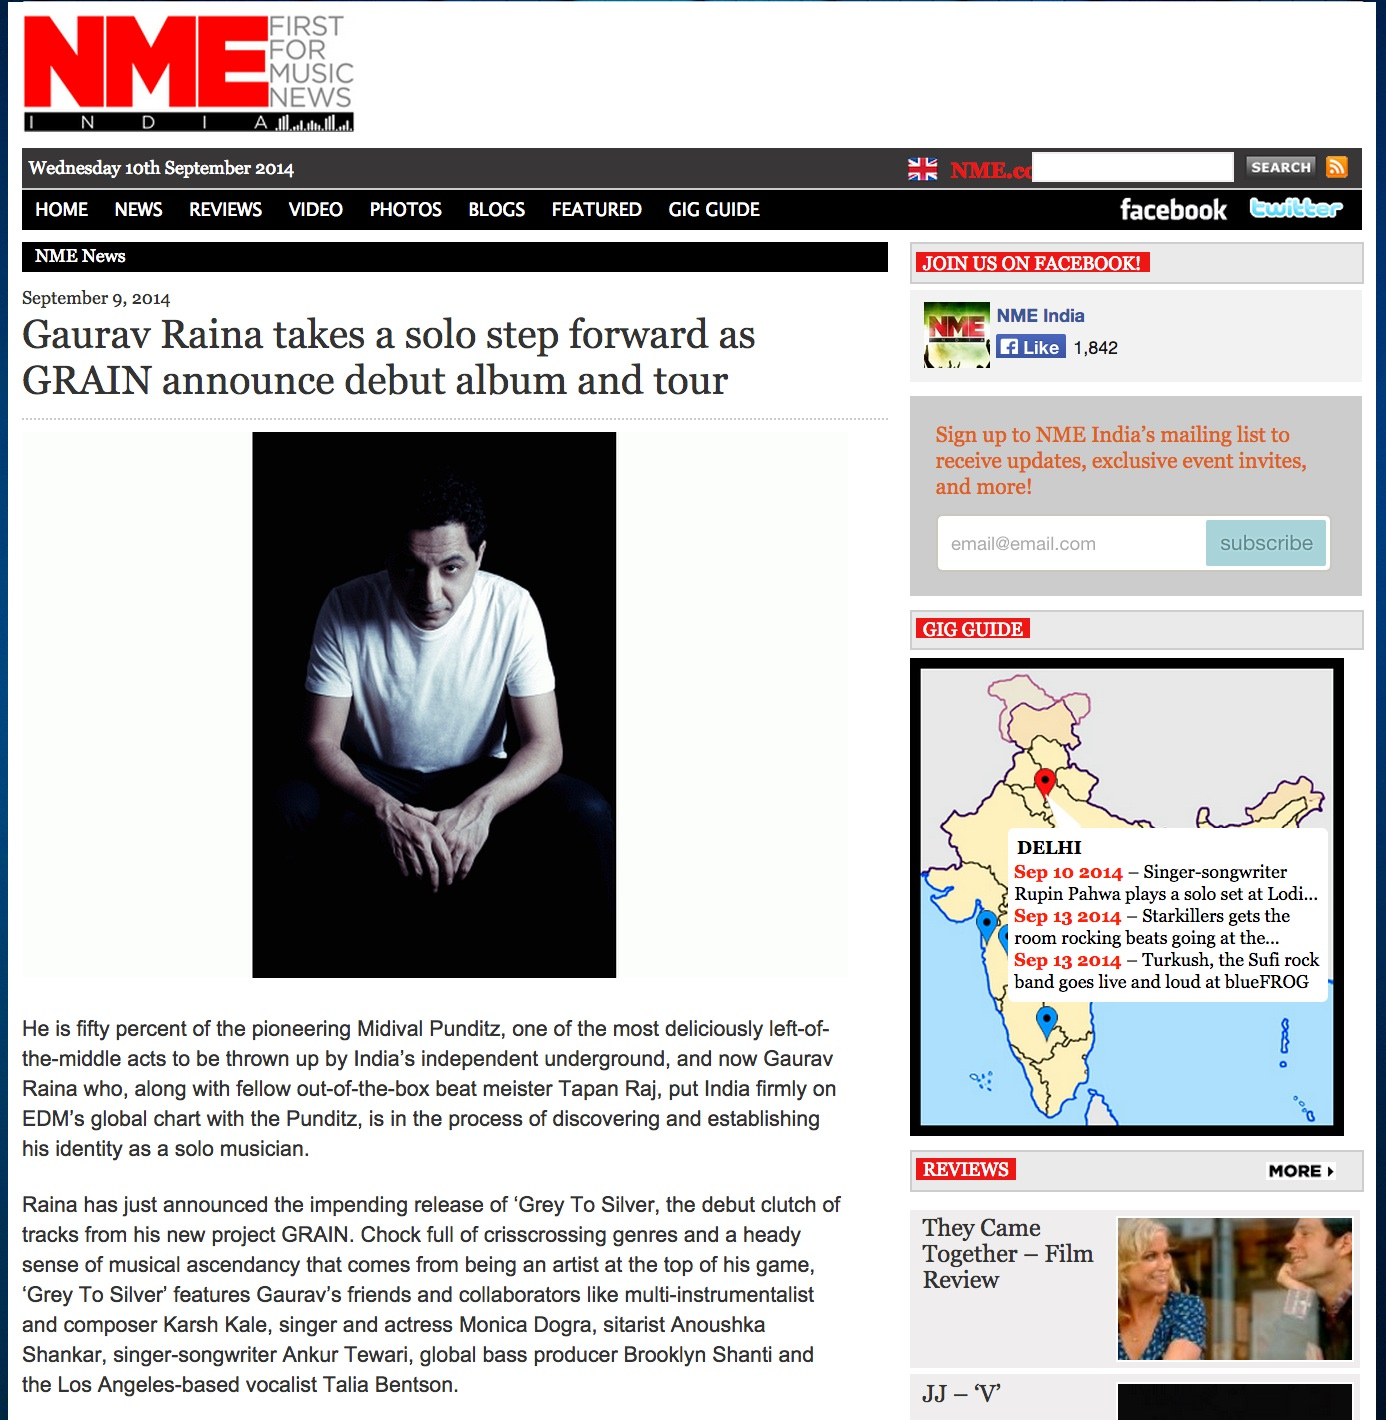 NME India (Sept. 2014)